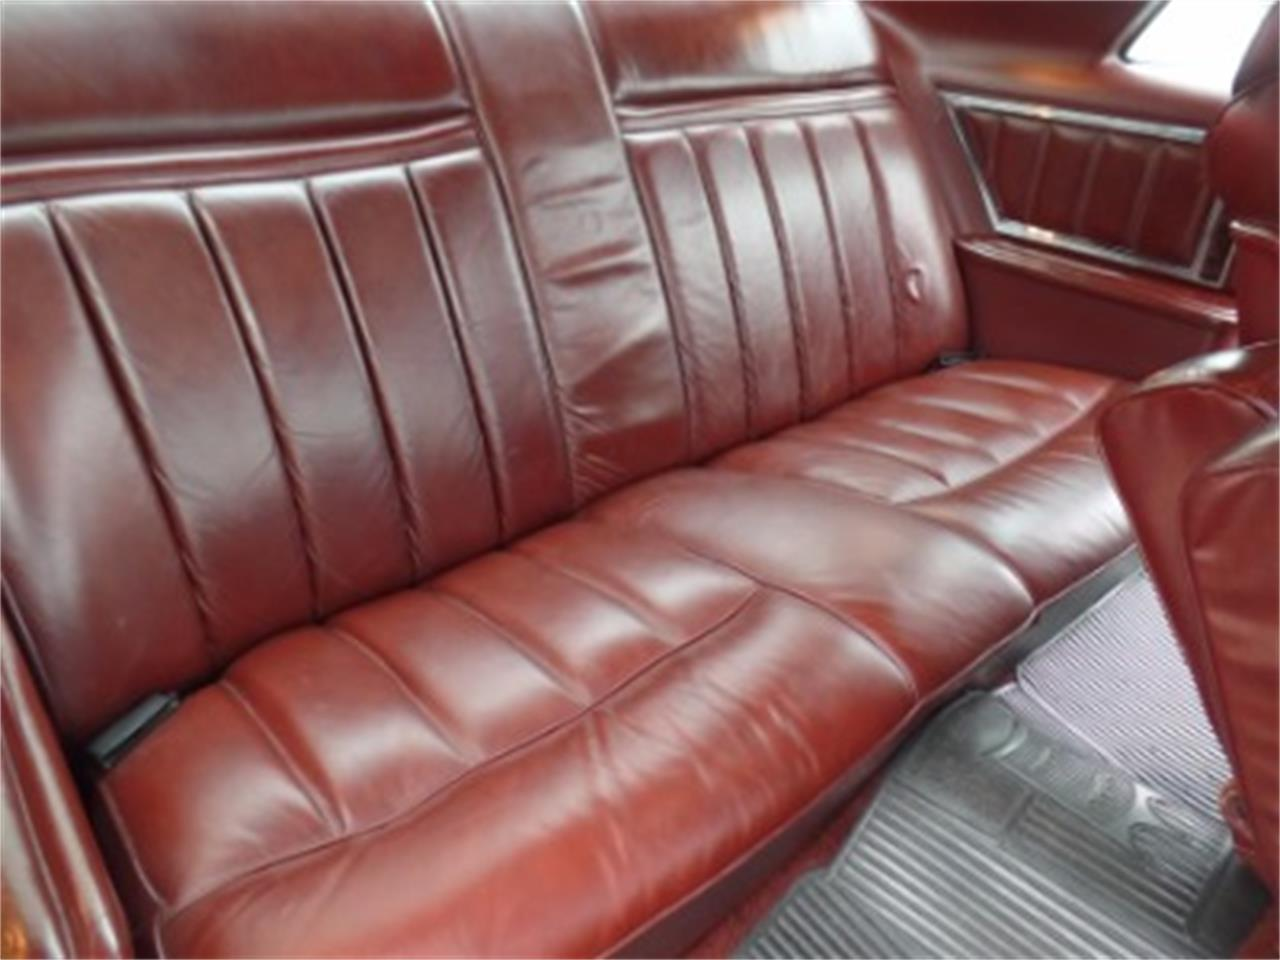 1979 Lincoln Continental for sale in Mundelein, IL – photo 26